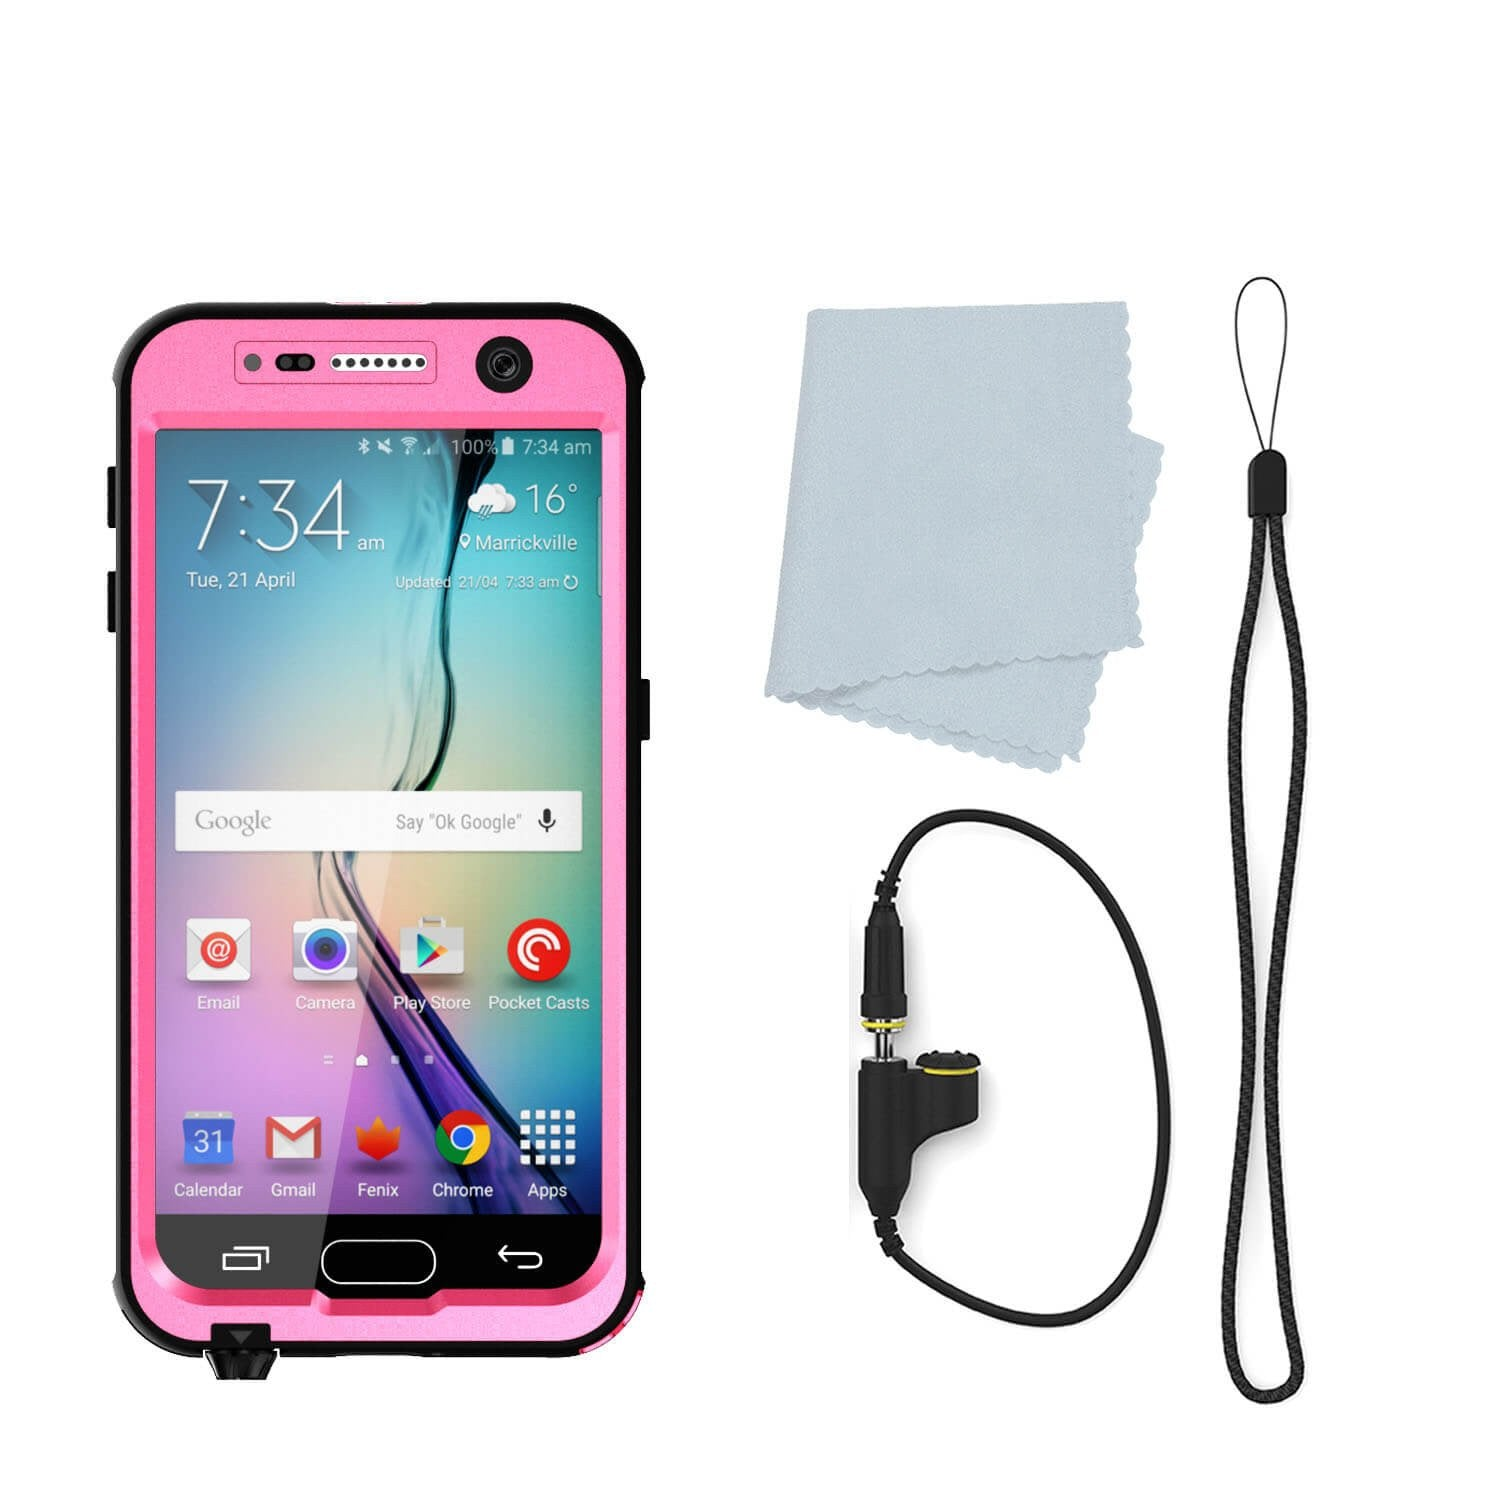 Galaxy S6 Waterproof Case PunkCase StudStar Pink Thin 6.6ft Underwater IP68 Shock/Dirt/Snow Proof